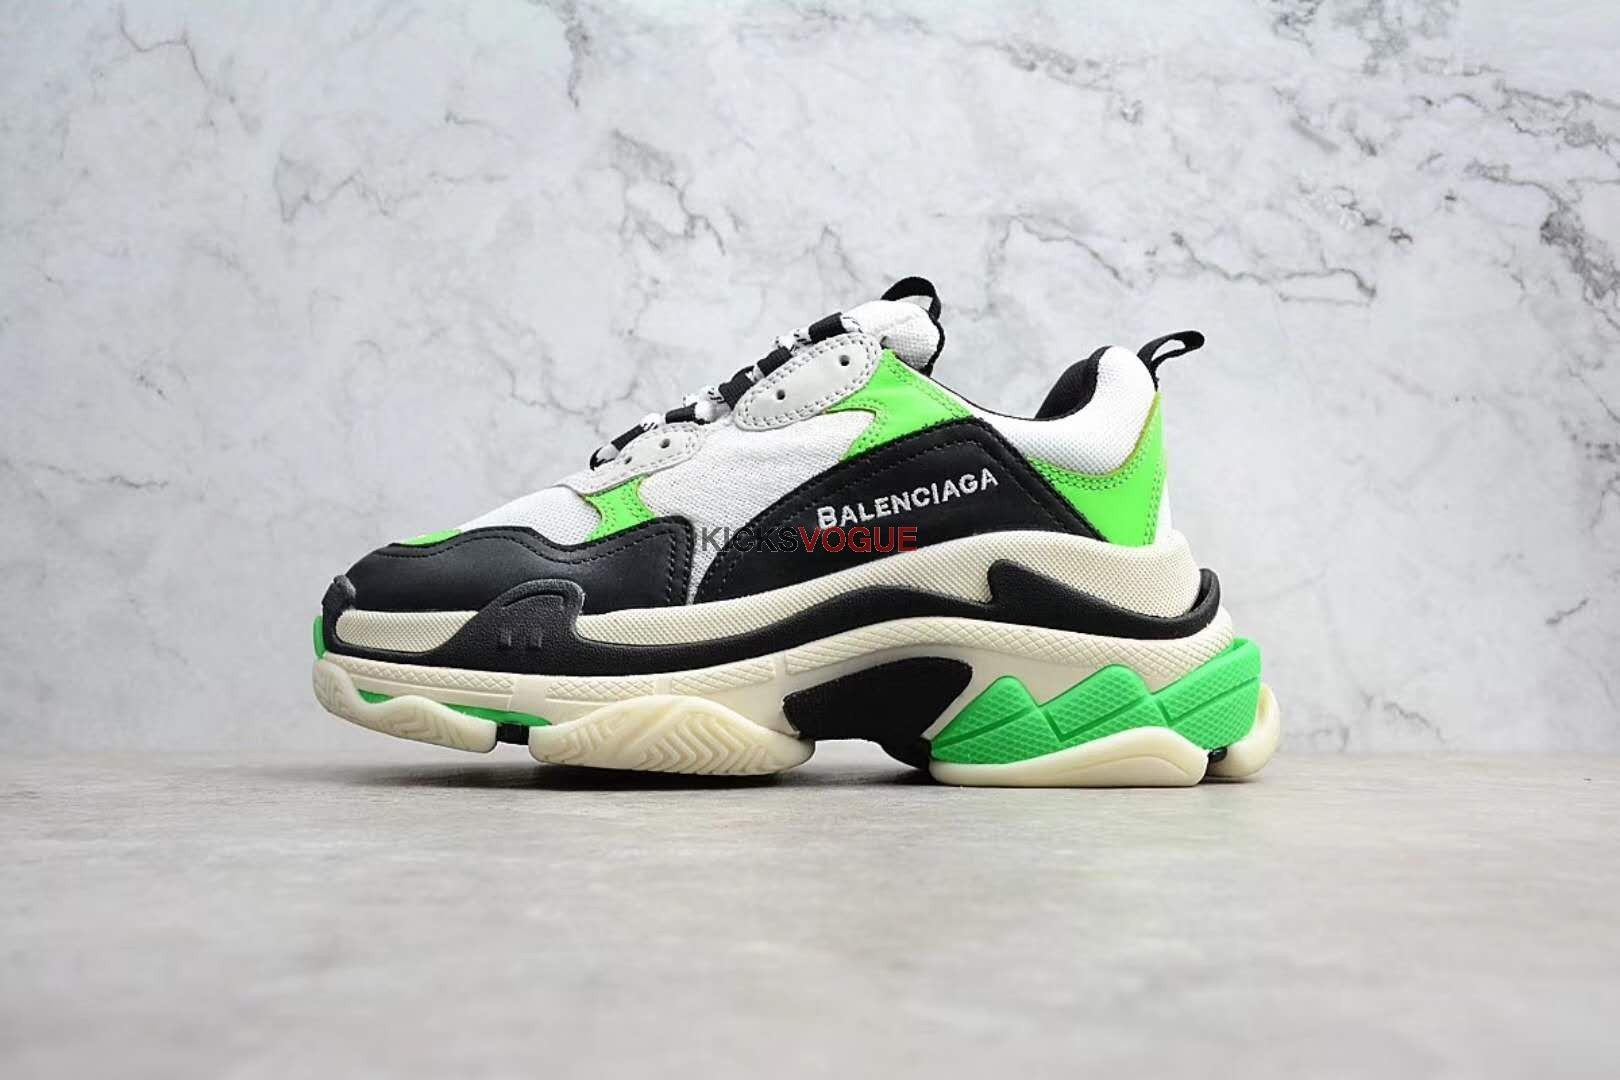 check out 96d7a 63b3f Balenciaga Triple S Mr. Porter Neon Green